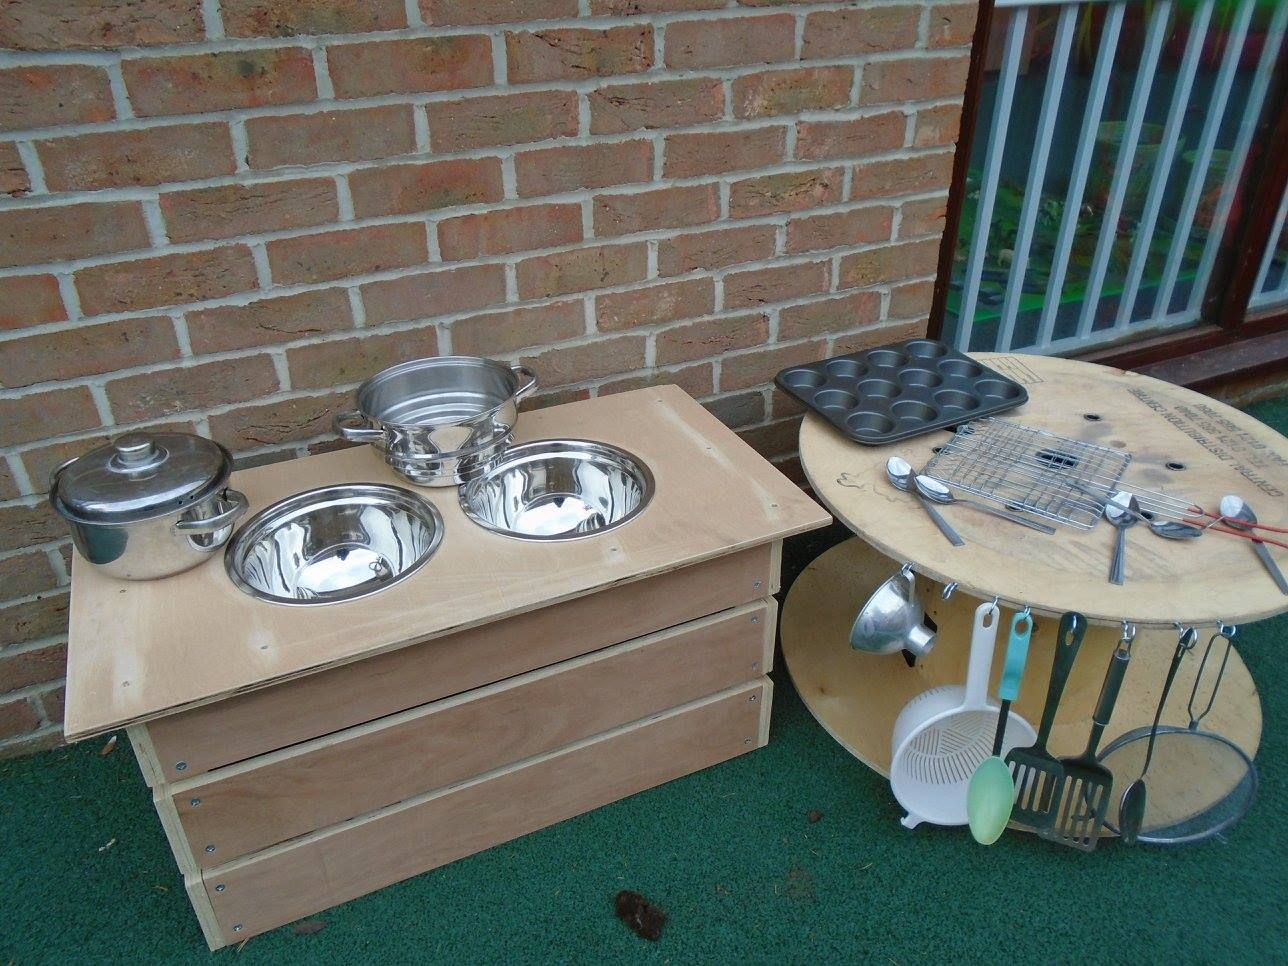 @BMBeenham fantastic mud kitchen from recycled materials.